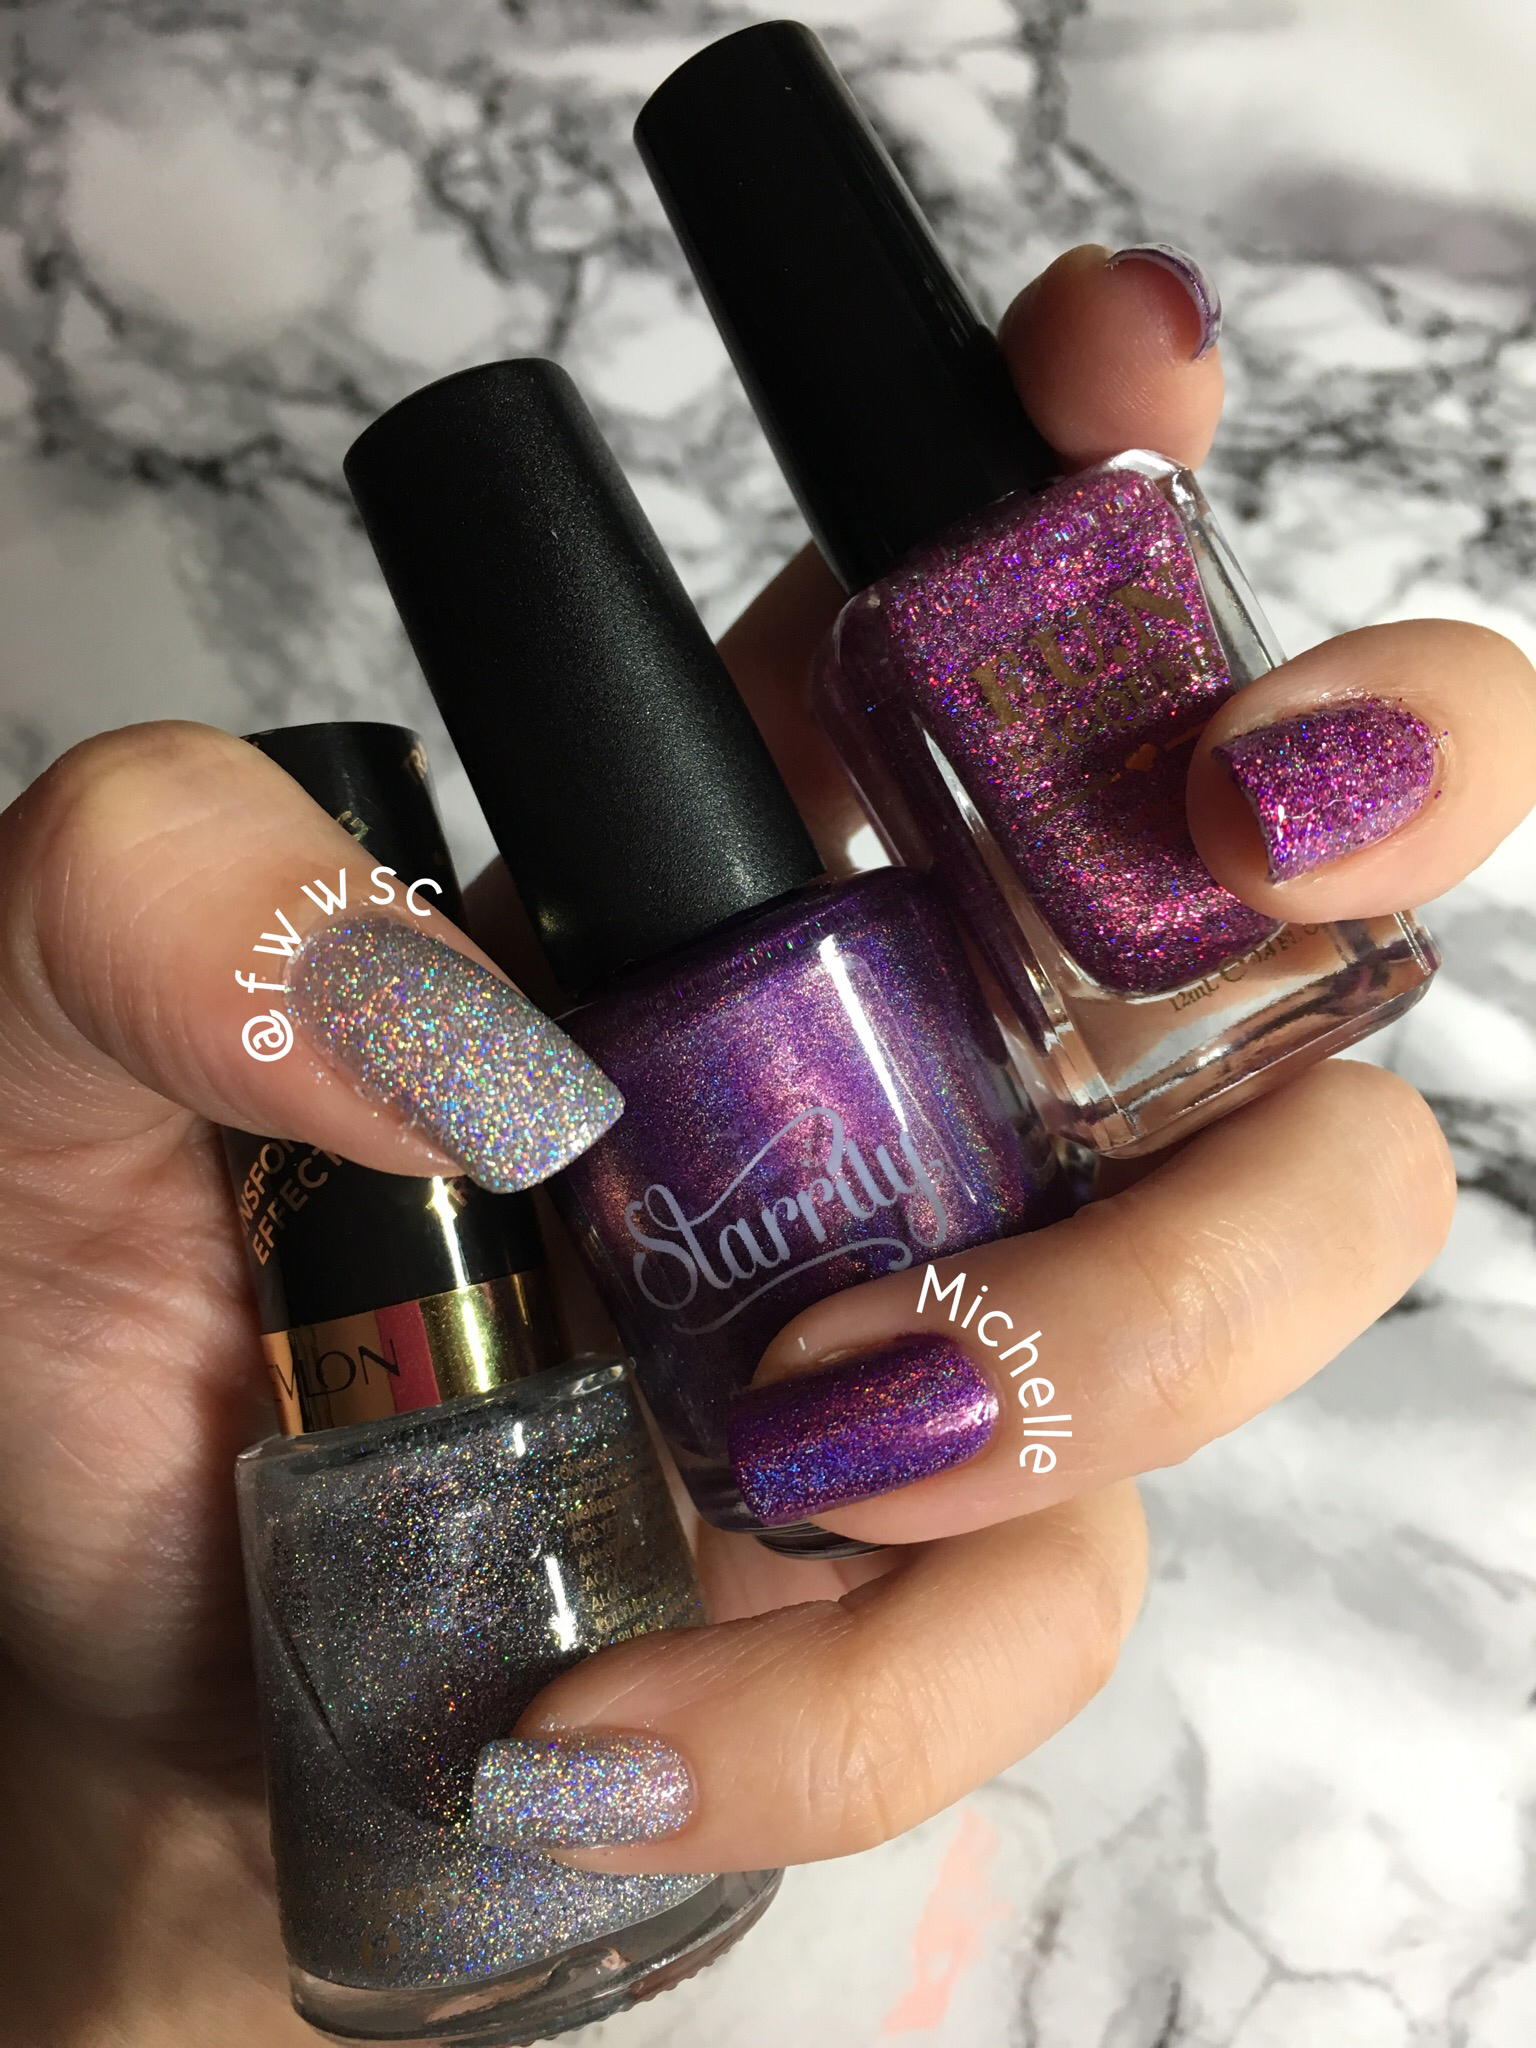 simplyNailogical – Hacker Nails